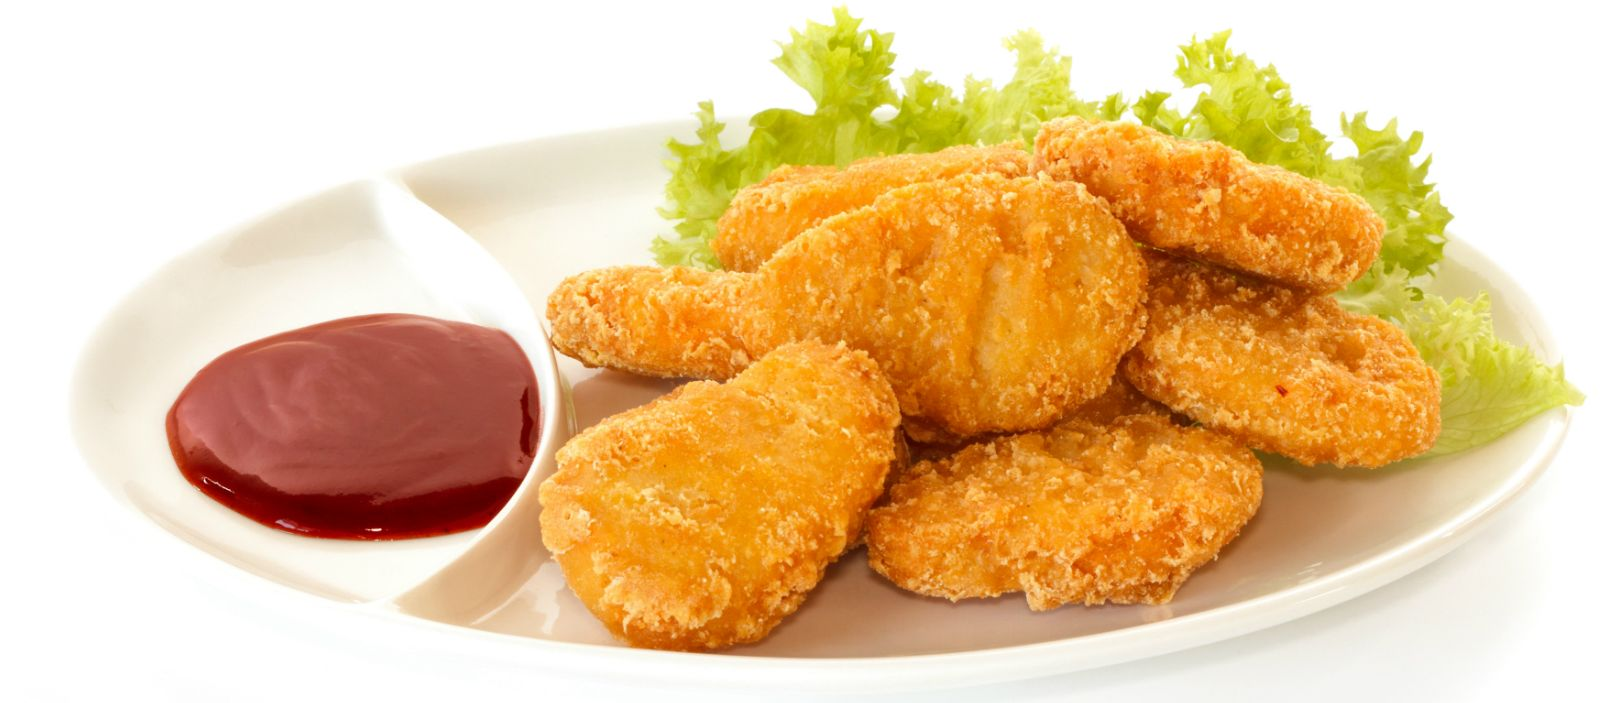 chicken_nuggets_delivery